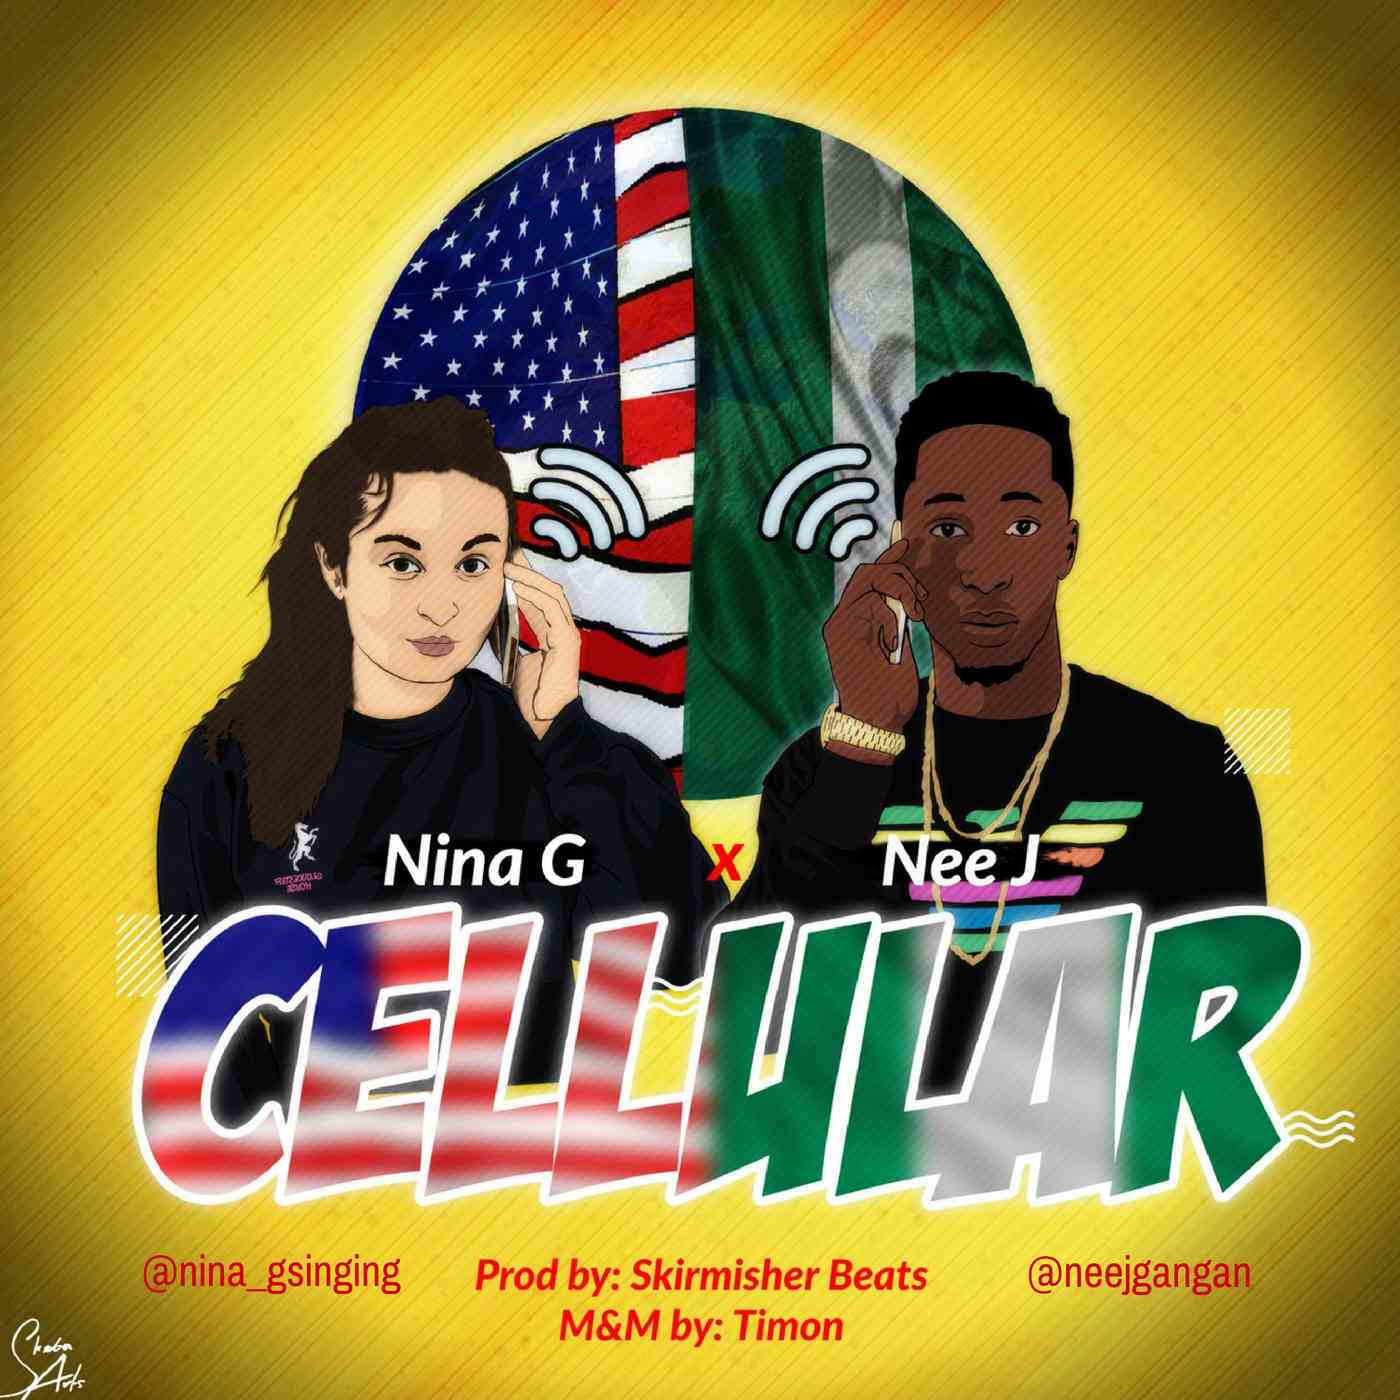 New Music: Nina G x Nee J - Cellular